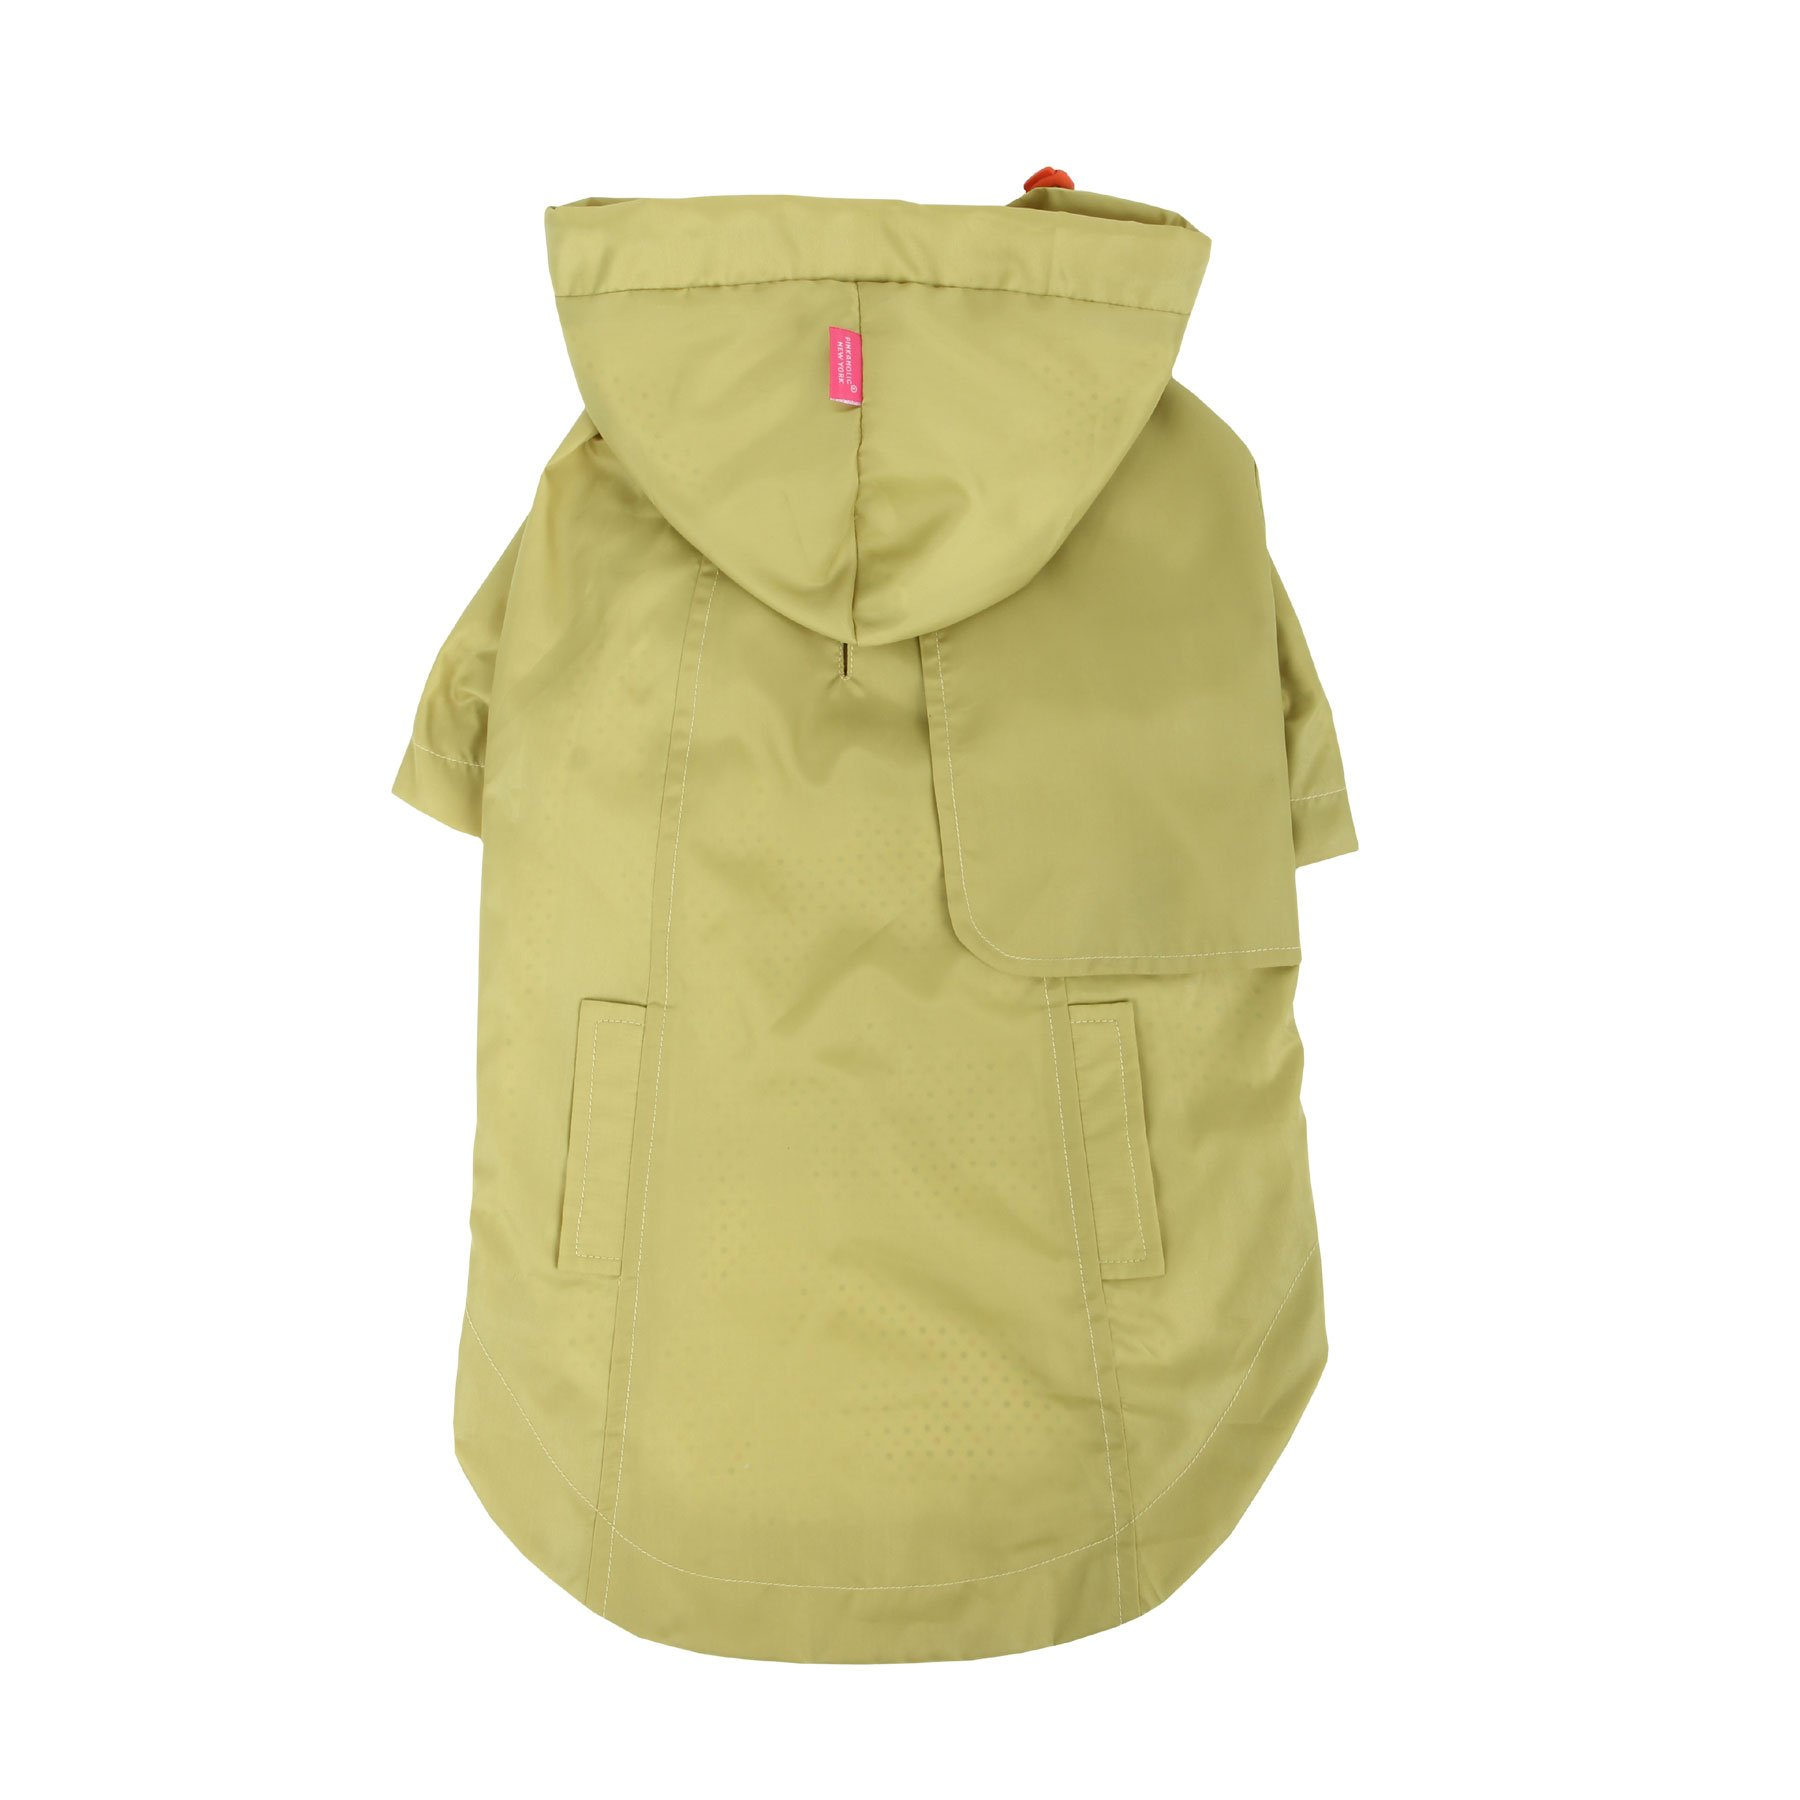 Pinkaholic New York Slicker Raincoat for Dogs, Medium, Lime by Pinkaholic New York